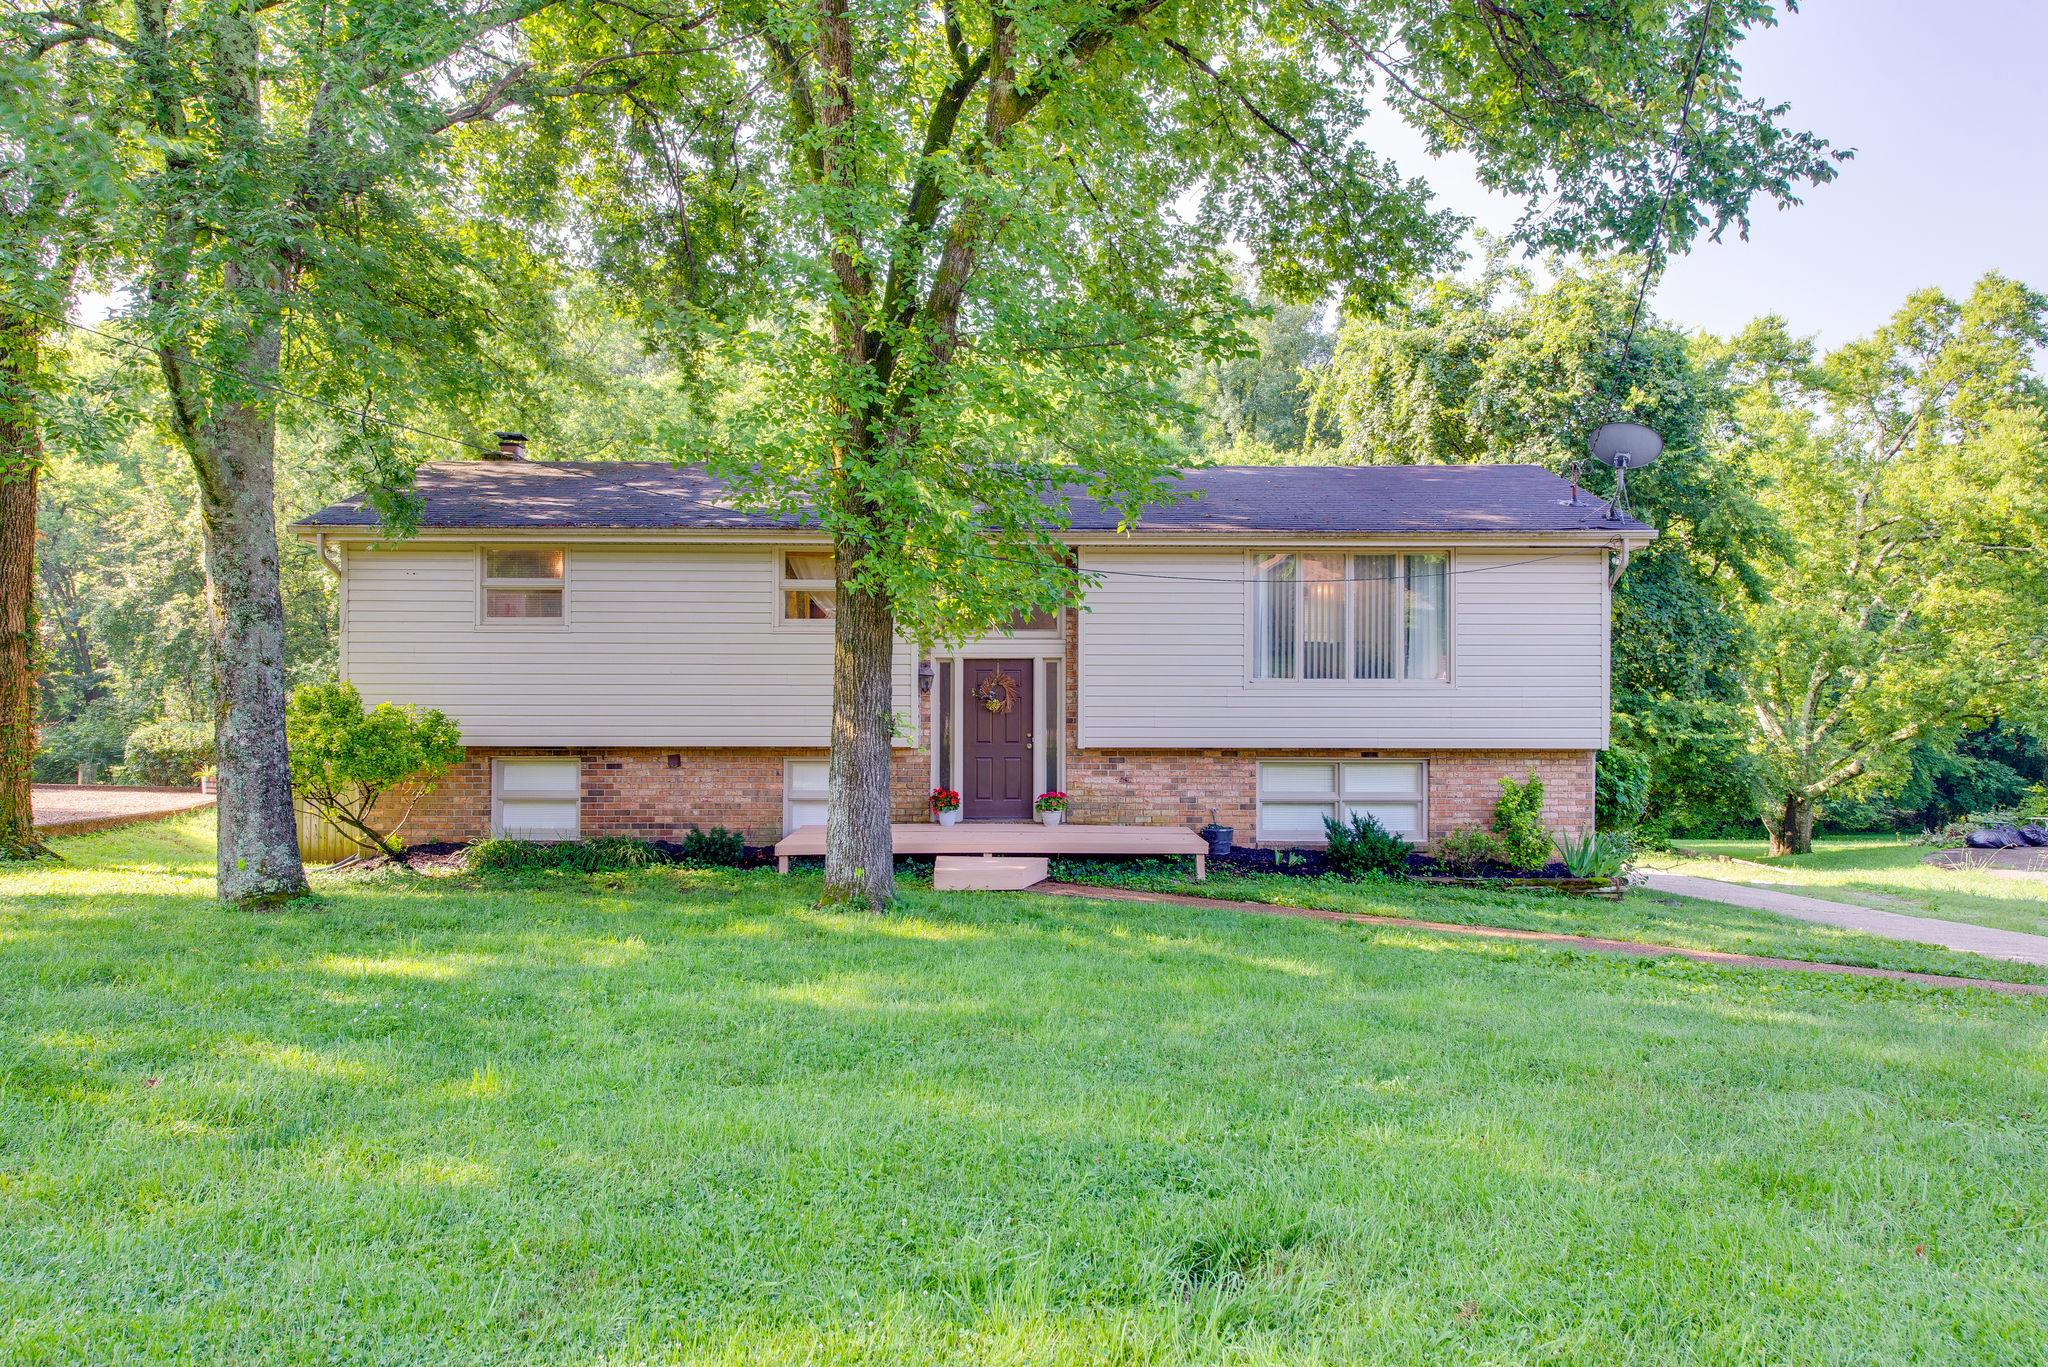 102 Airfloat Dr, Hendersonville in Sumner County County, TN 37075 Home for Sale